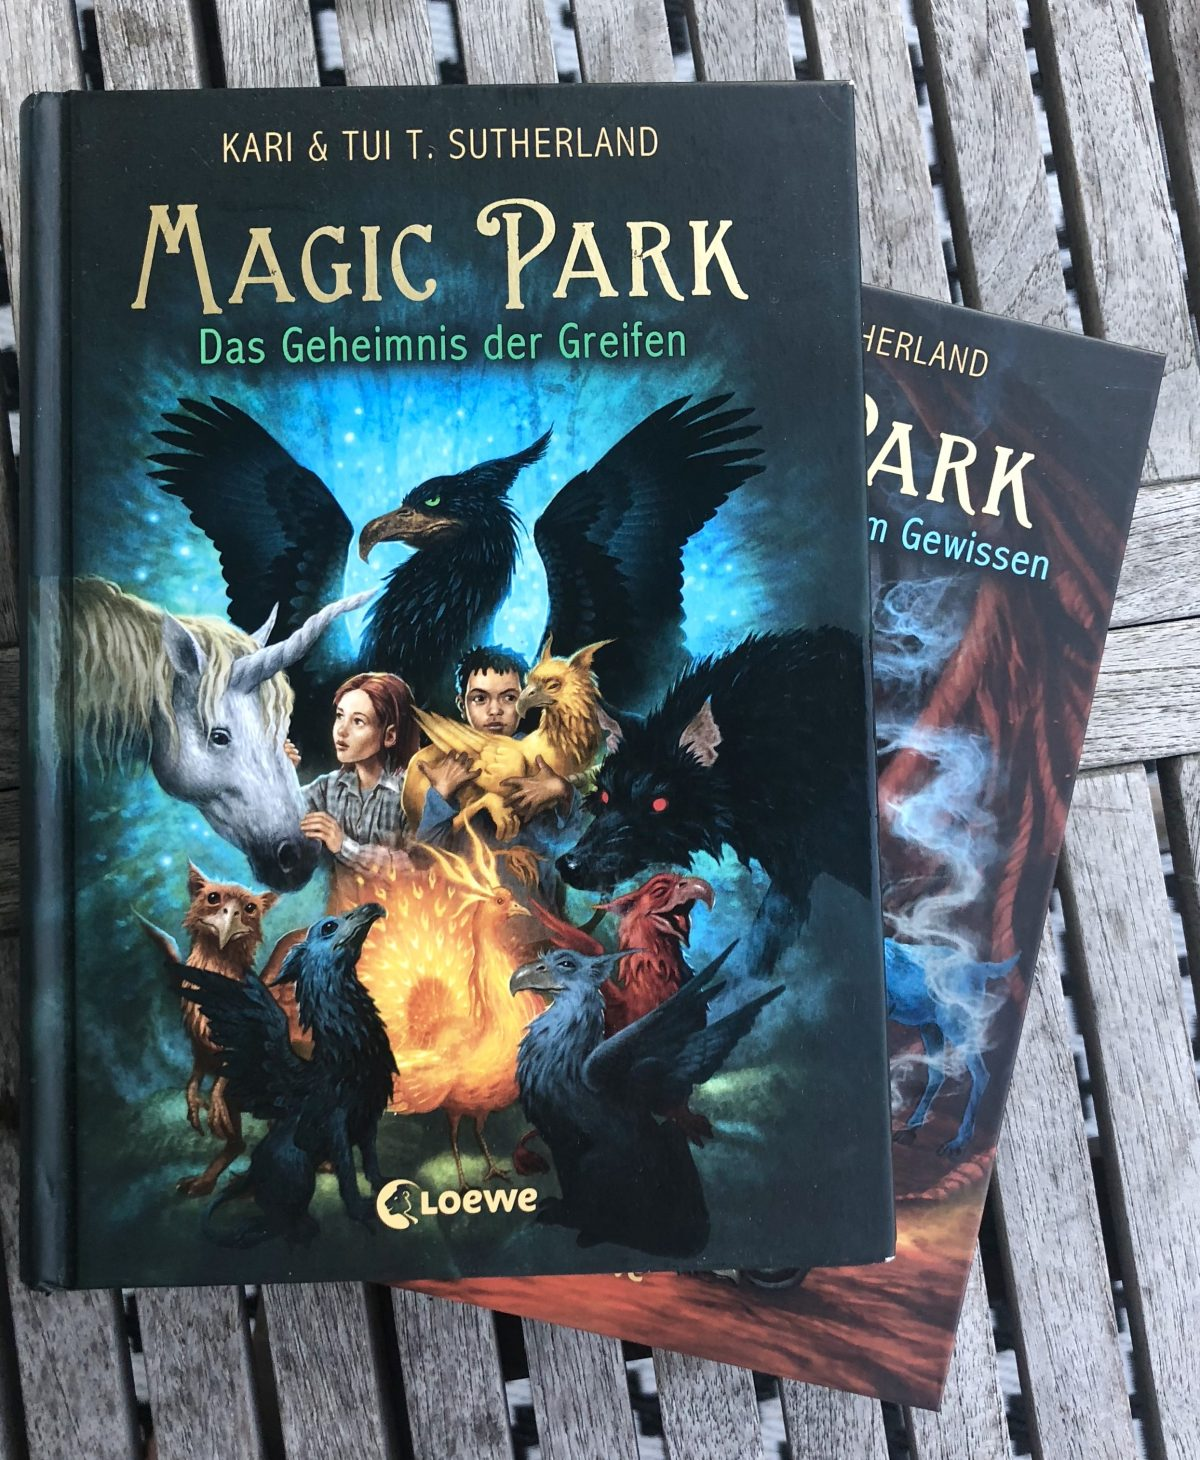 Die Magic Park-Reihe | berlinmittemom.com